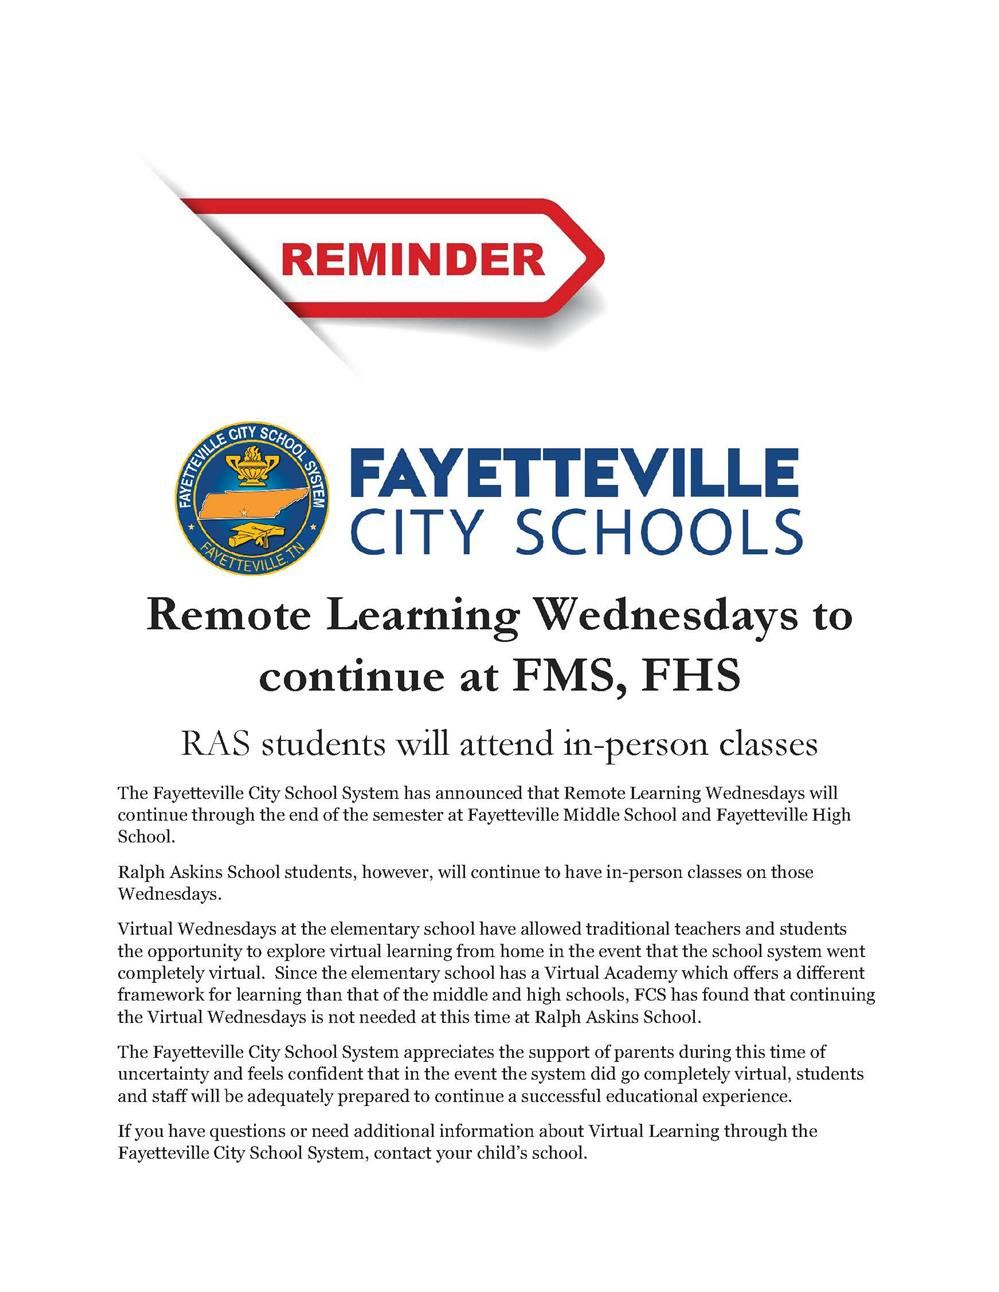 press release about remote Wednesdays